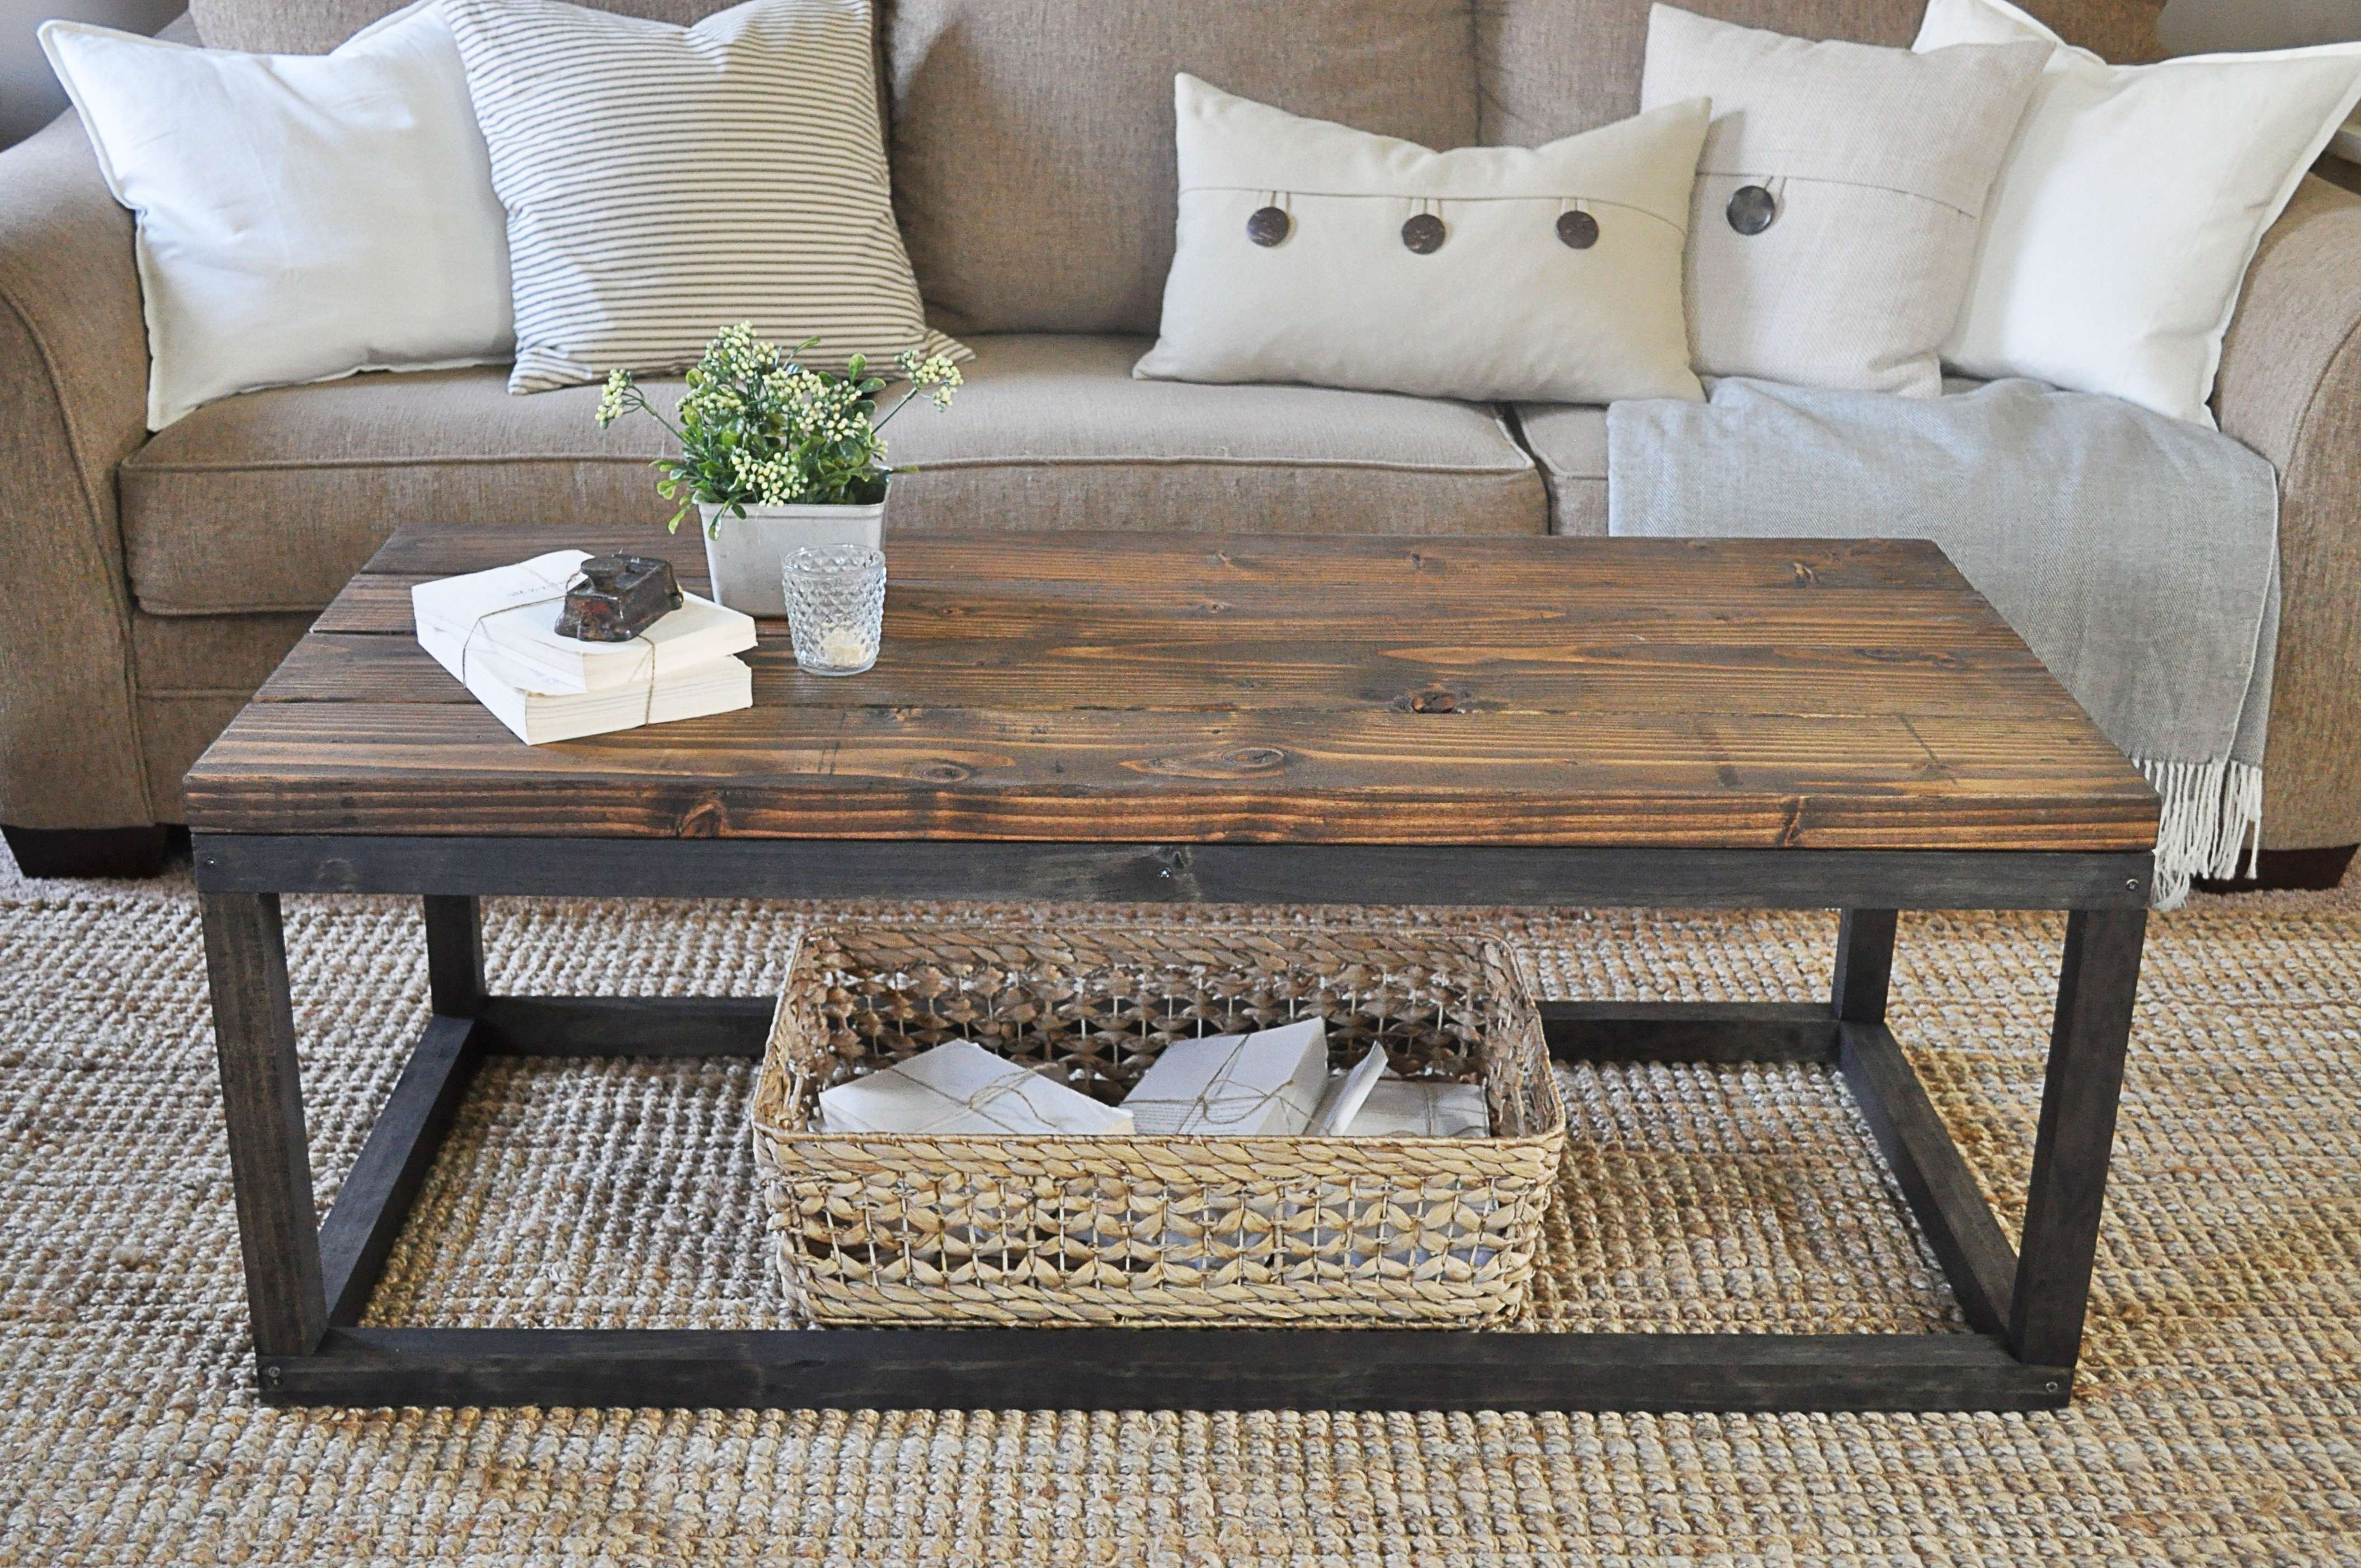 Preferred Industrial Coffee Tables In Industrial Coffee Table – Little Glass Jar (View 17 of 20)